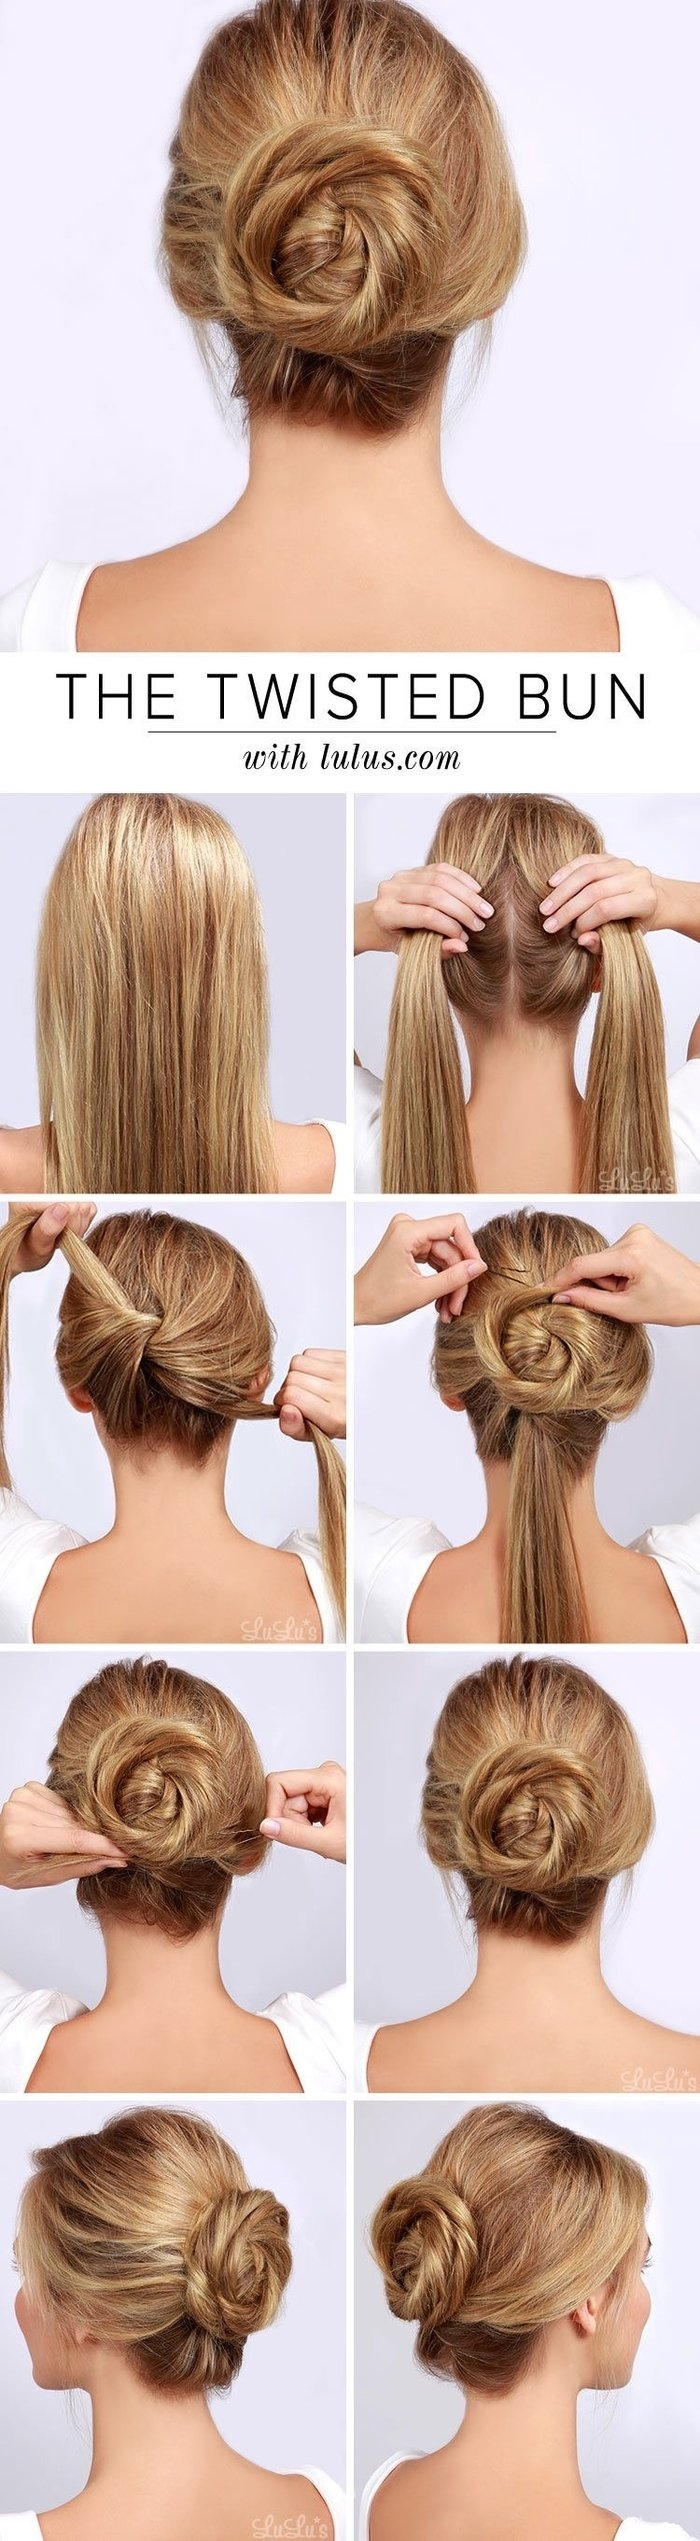 7 Easy Hair Tutorials You Can Totally DIY